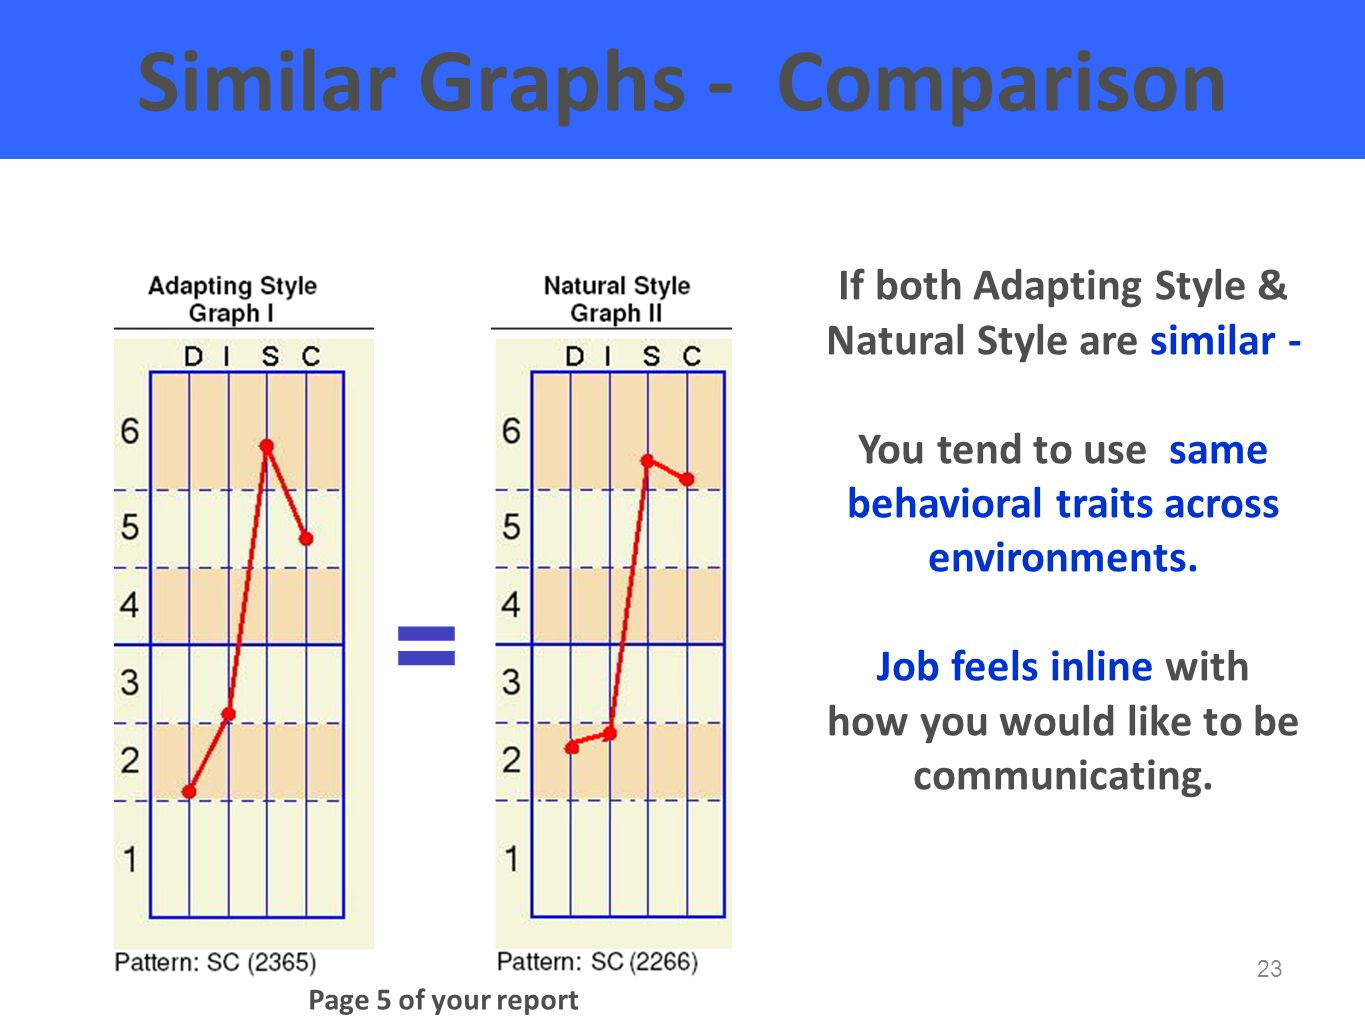 = Similar Graphs - Comparison